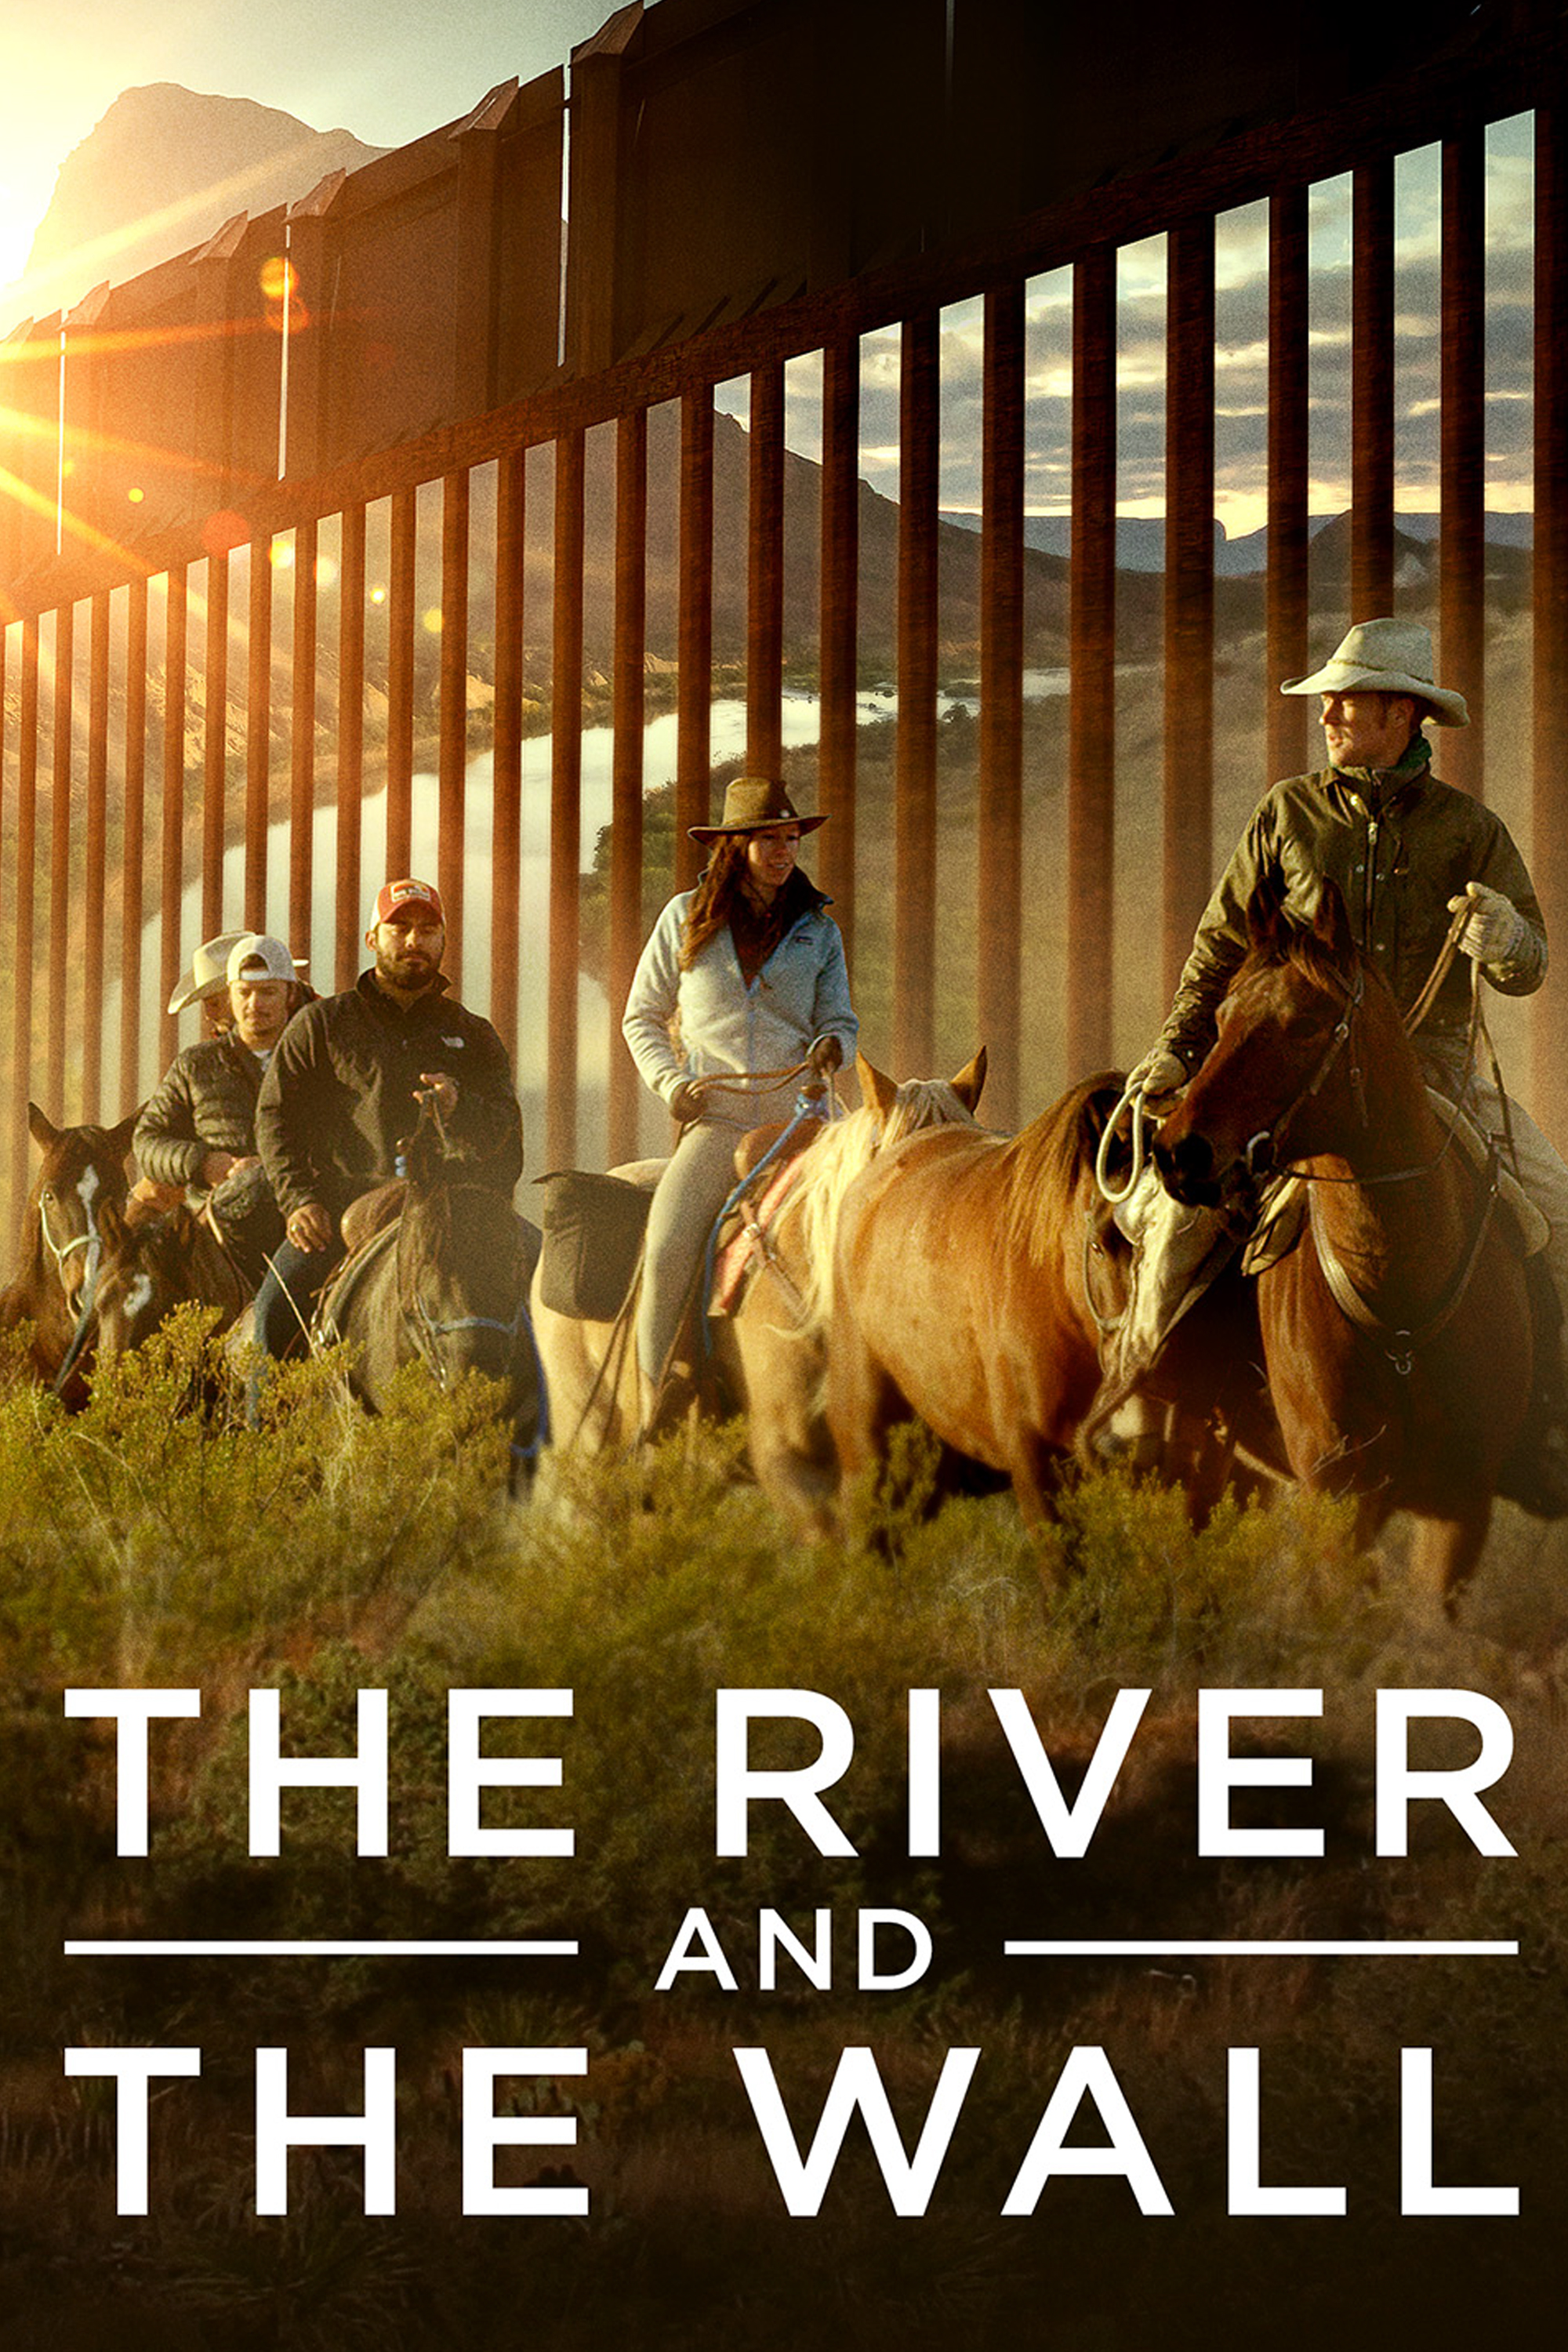 The River and the Wall (2019)